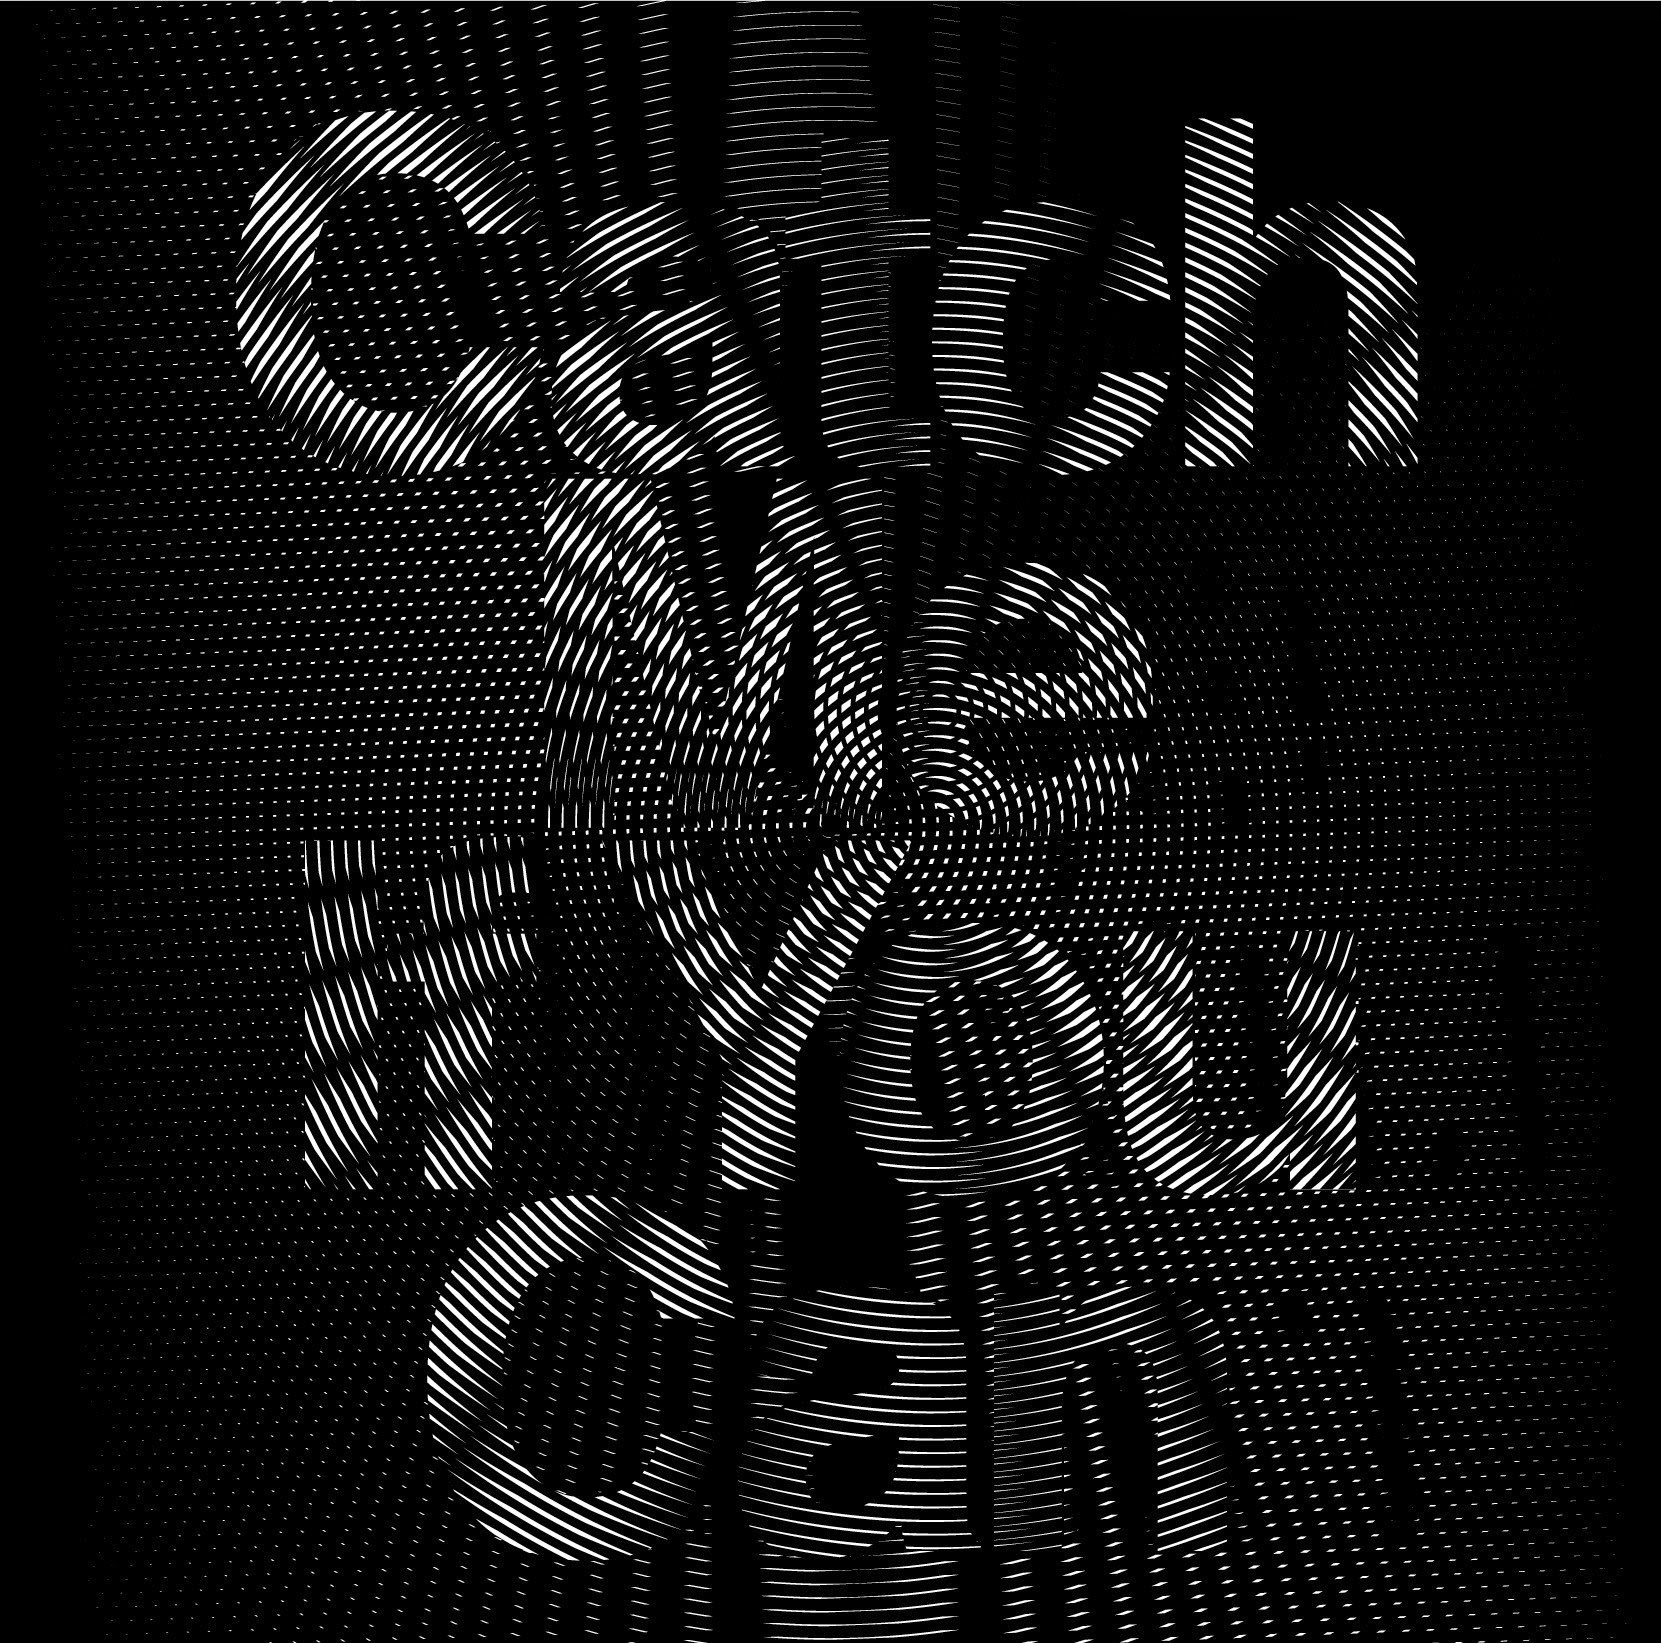 Girls' Generation Catch Me If You Can Cover